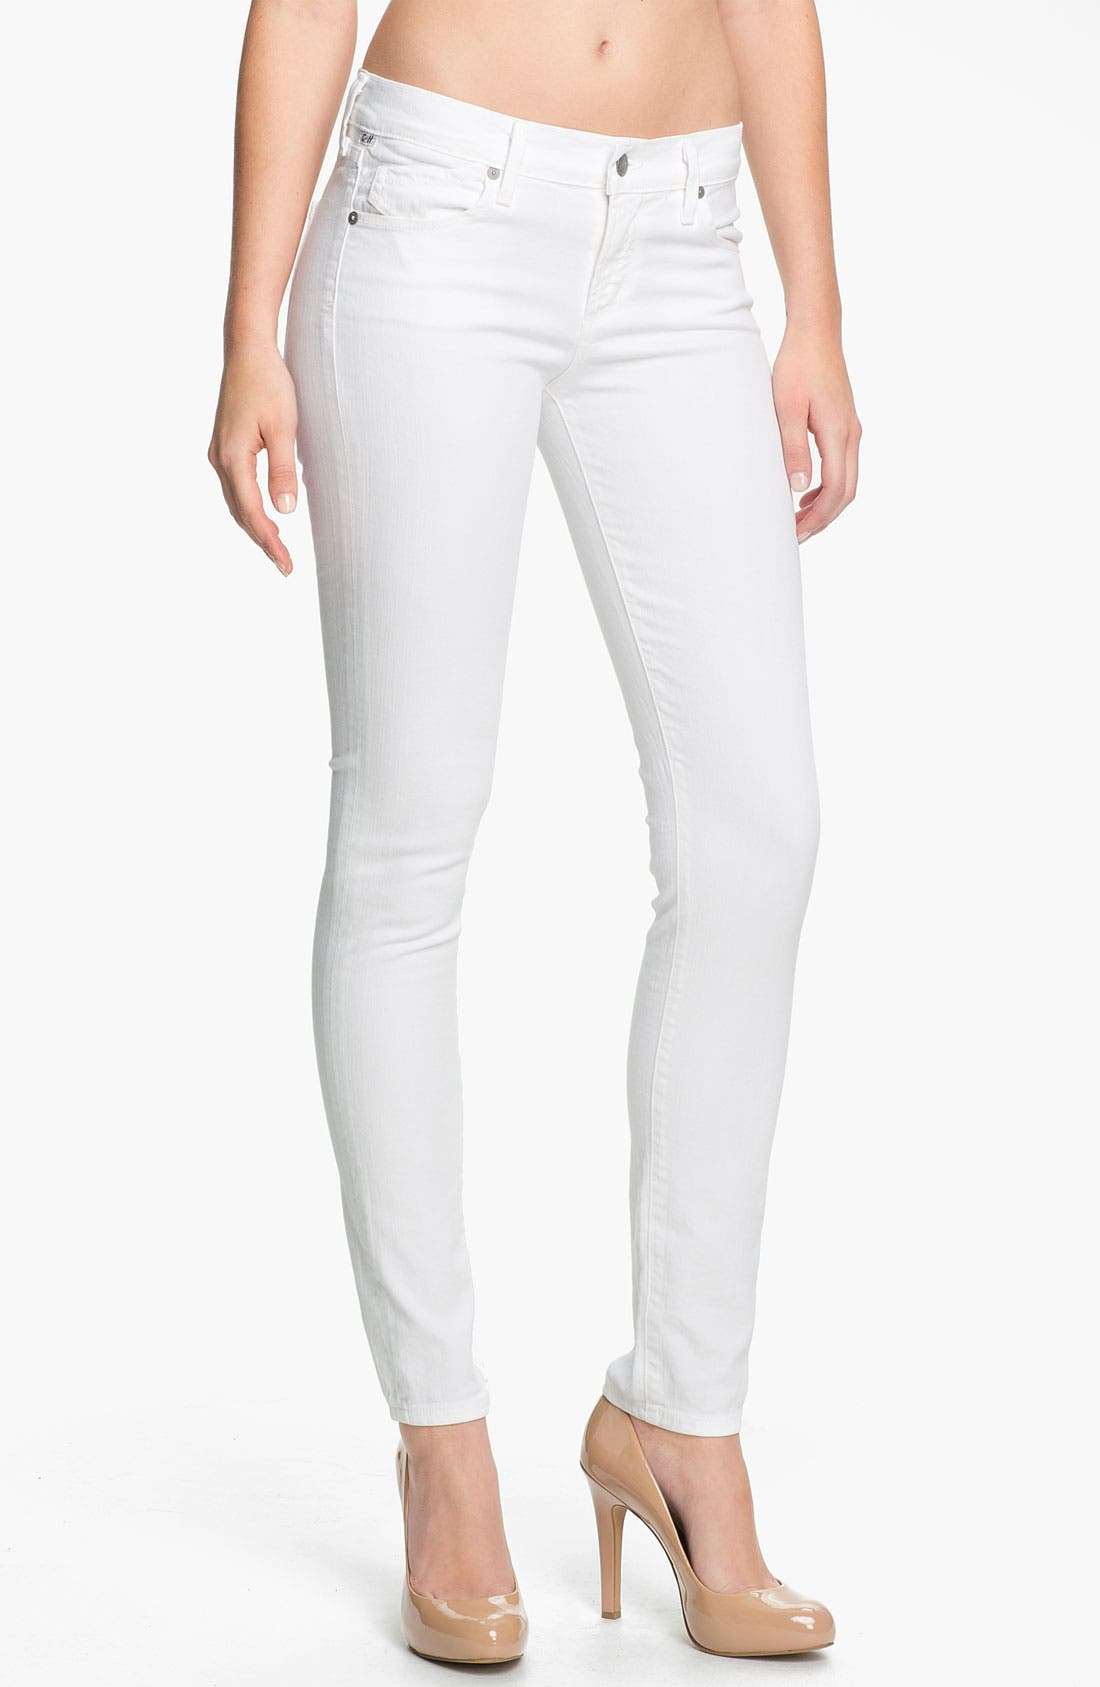 Alternate Image 1 Selected - Citizens of Humanity Skinny Stretch Jeans (Santorini)